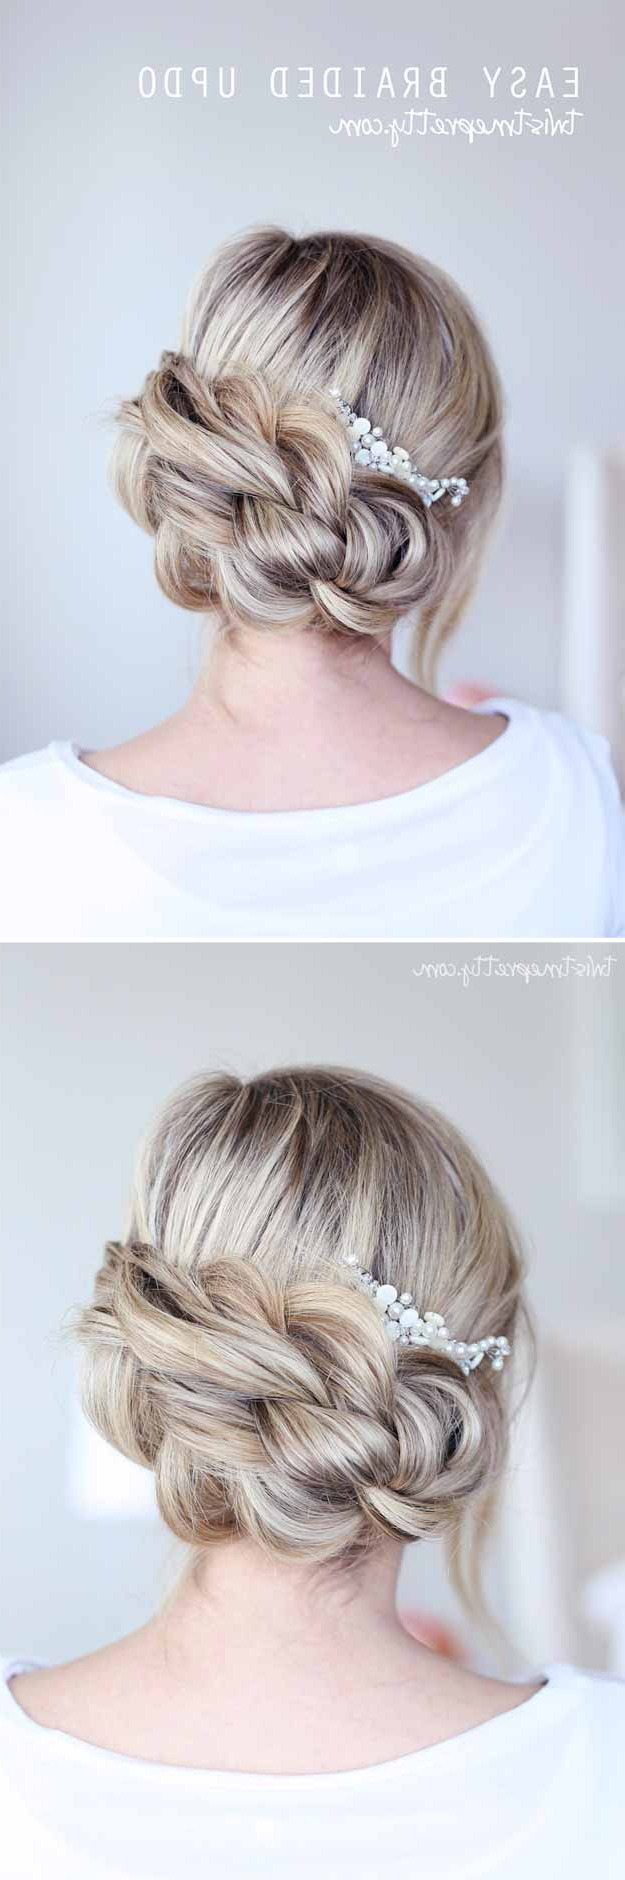 Most Recent Sleek And Simple Wedding Hairstyles In 31 Wedding Hairstyles For Long Hair – The Goddess (View 10 of 20)